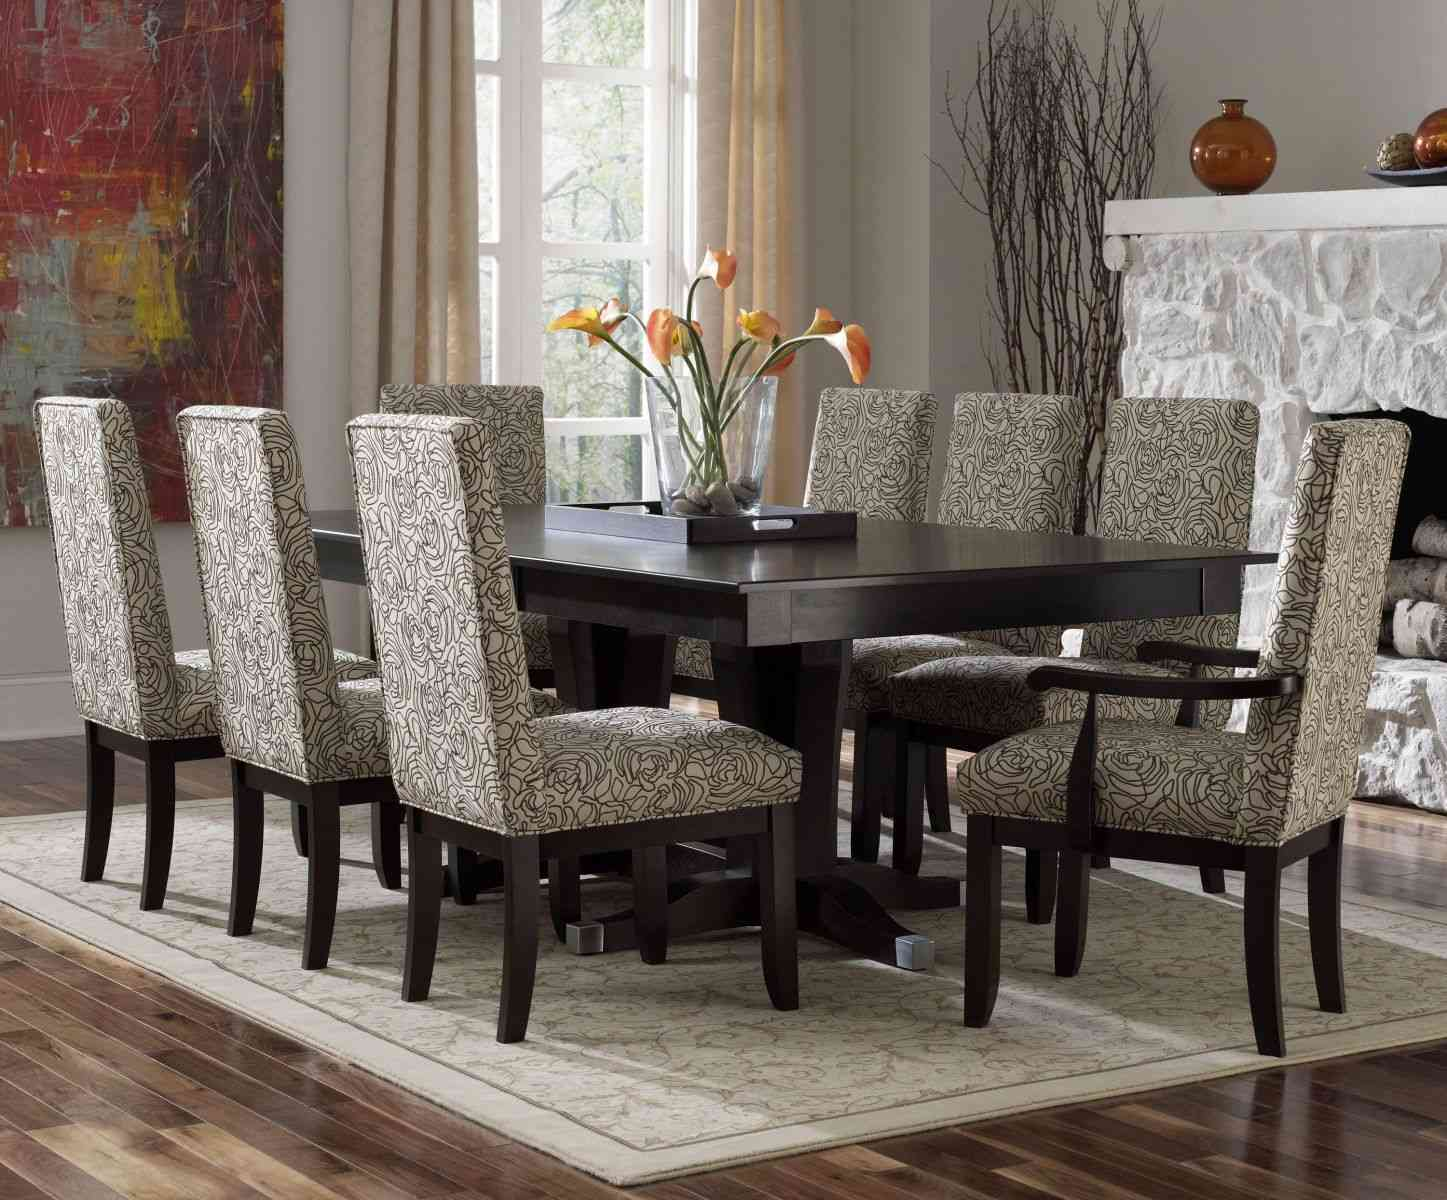 Transitional Dining Room Decorating Ideas Part - 47: Source · Transitional Dining Room Design Ideas